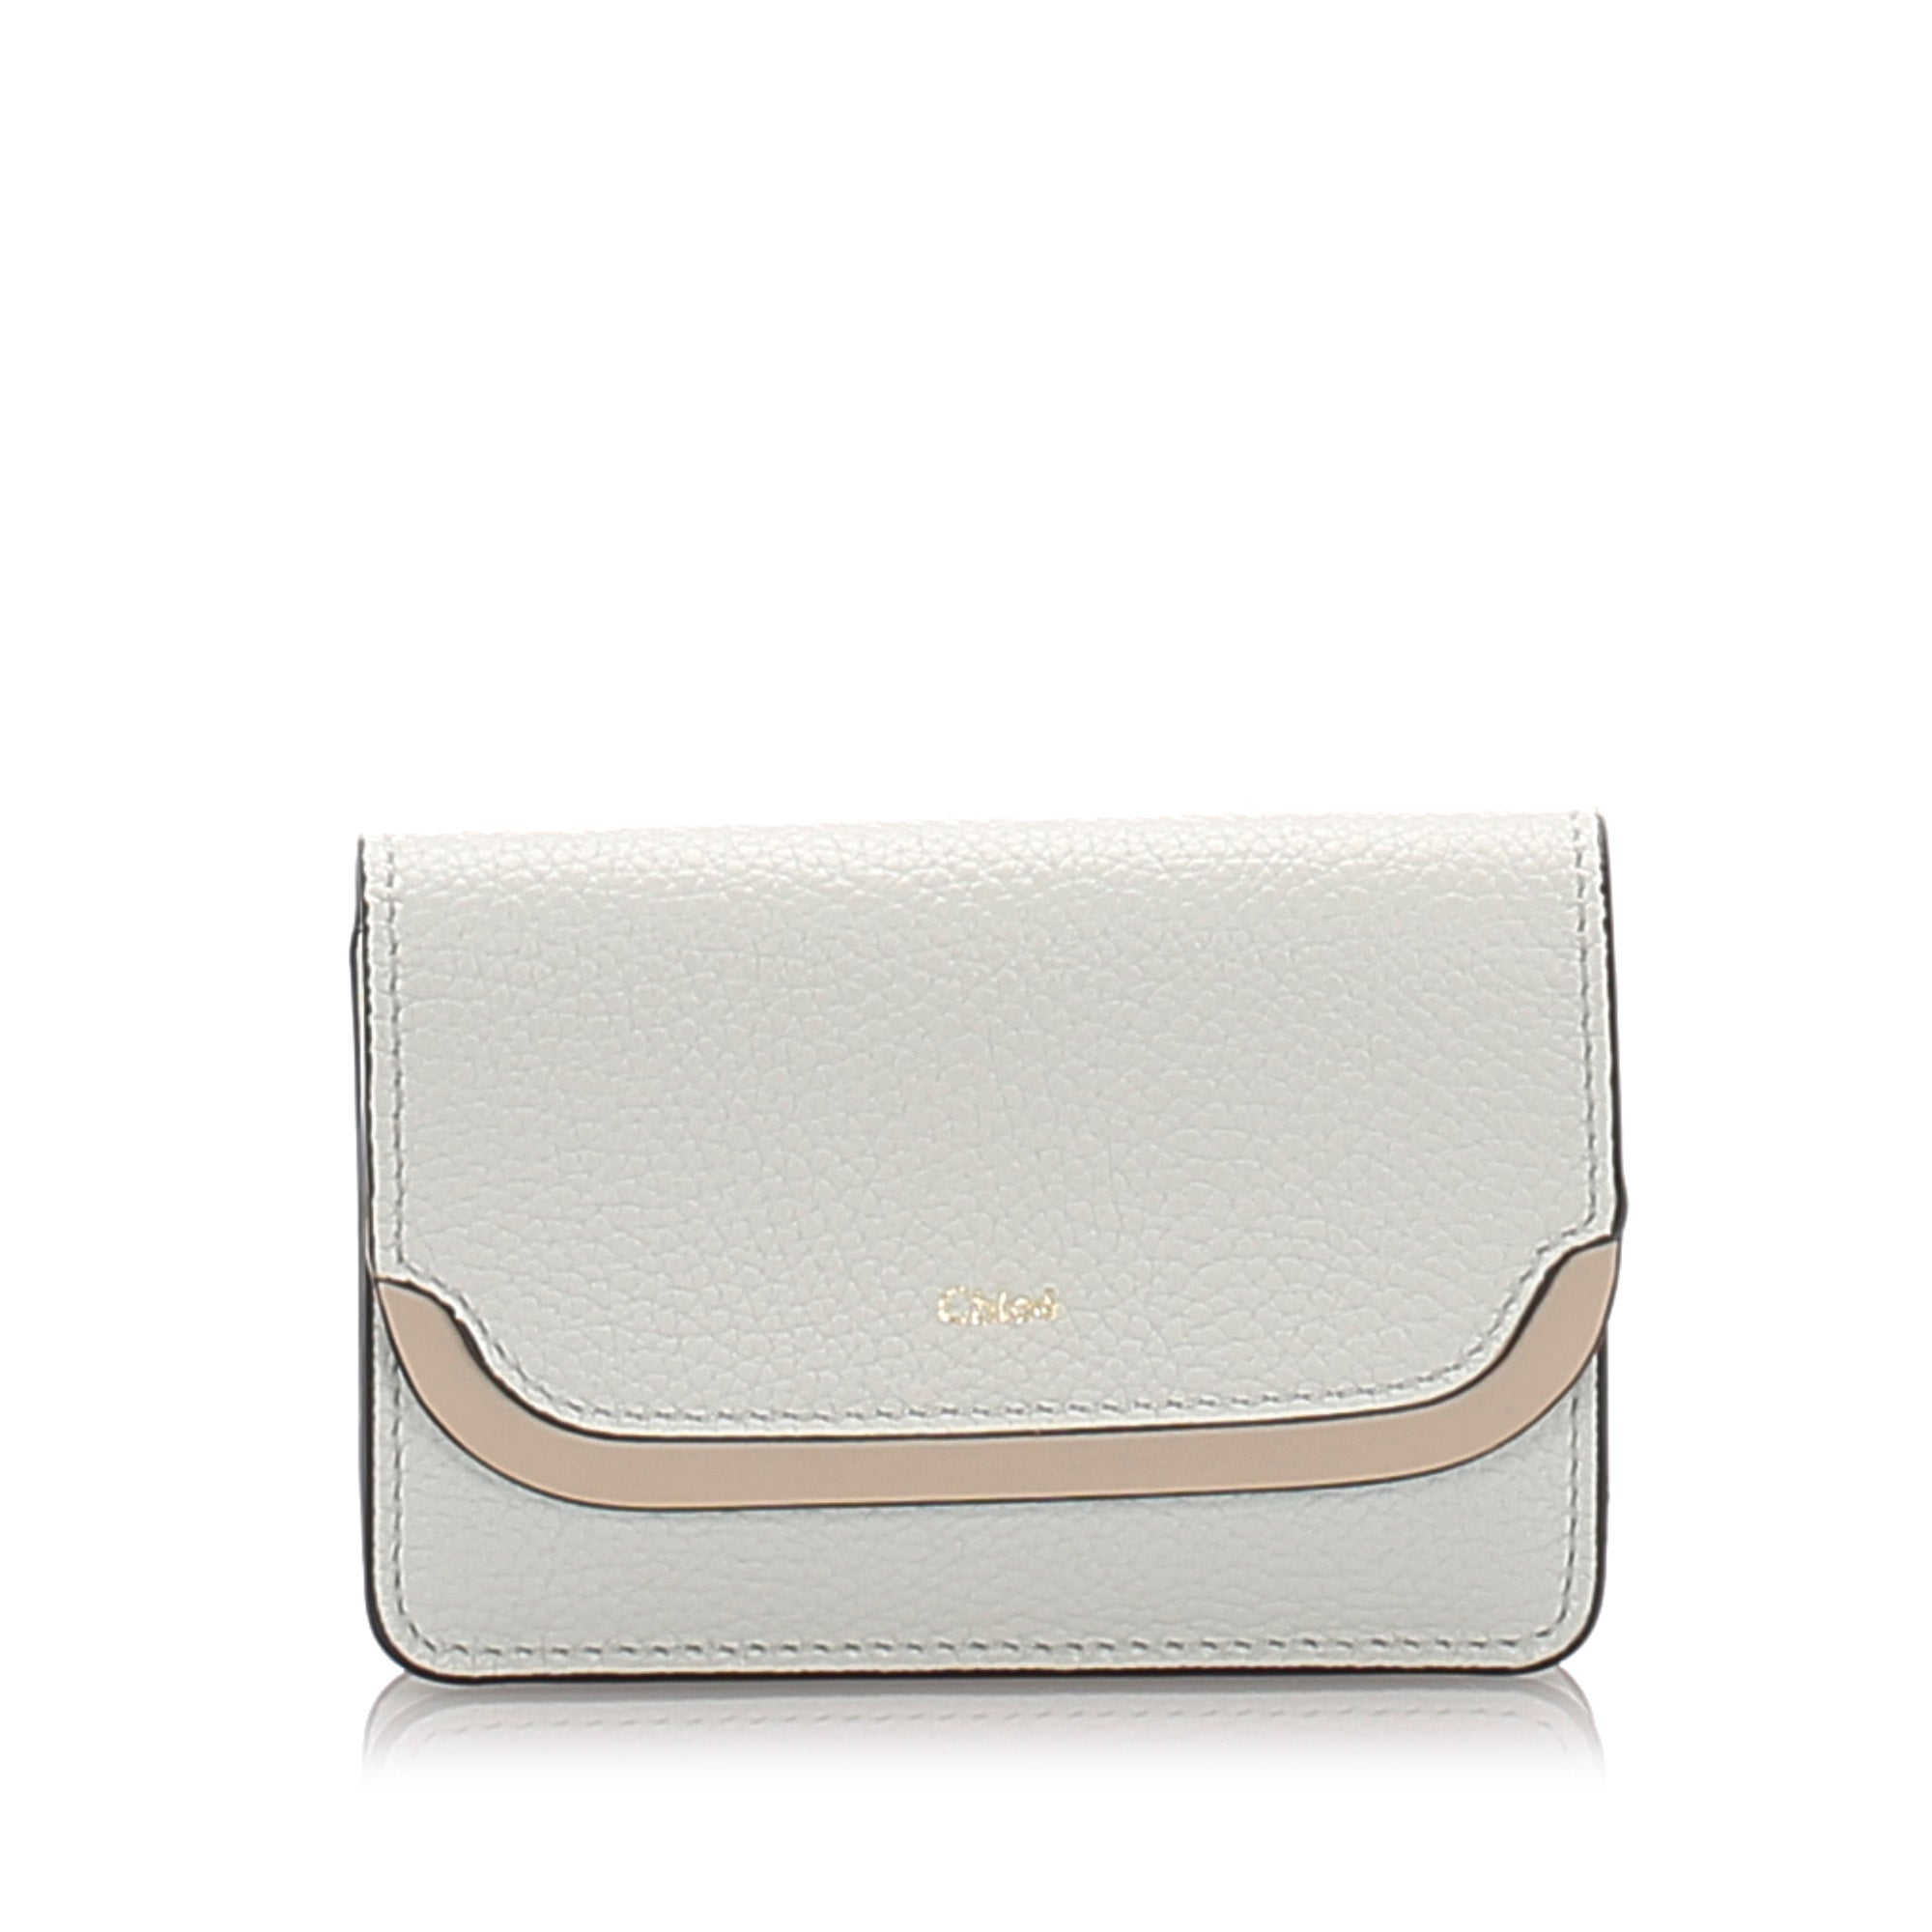 Chloe White Leather Card Holder